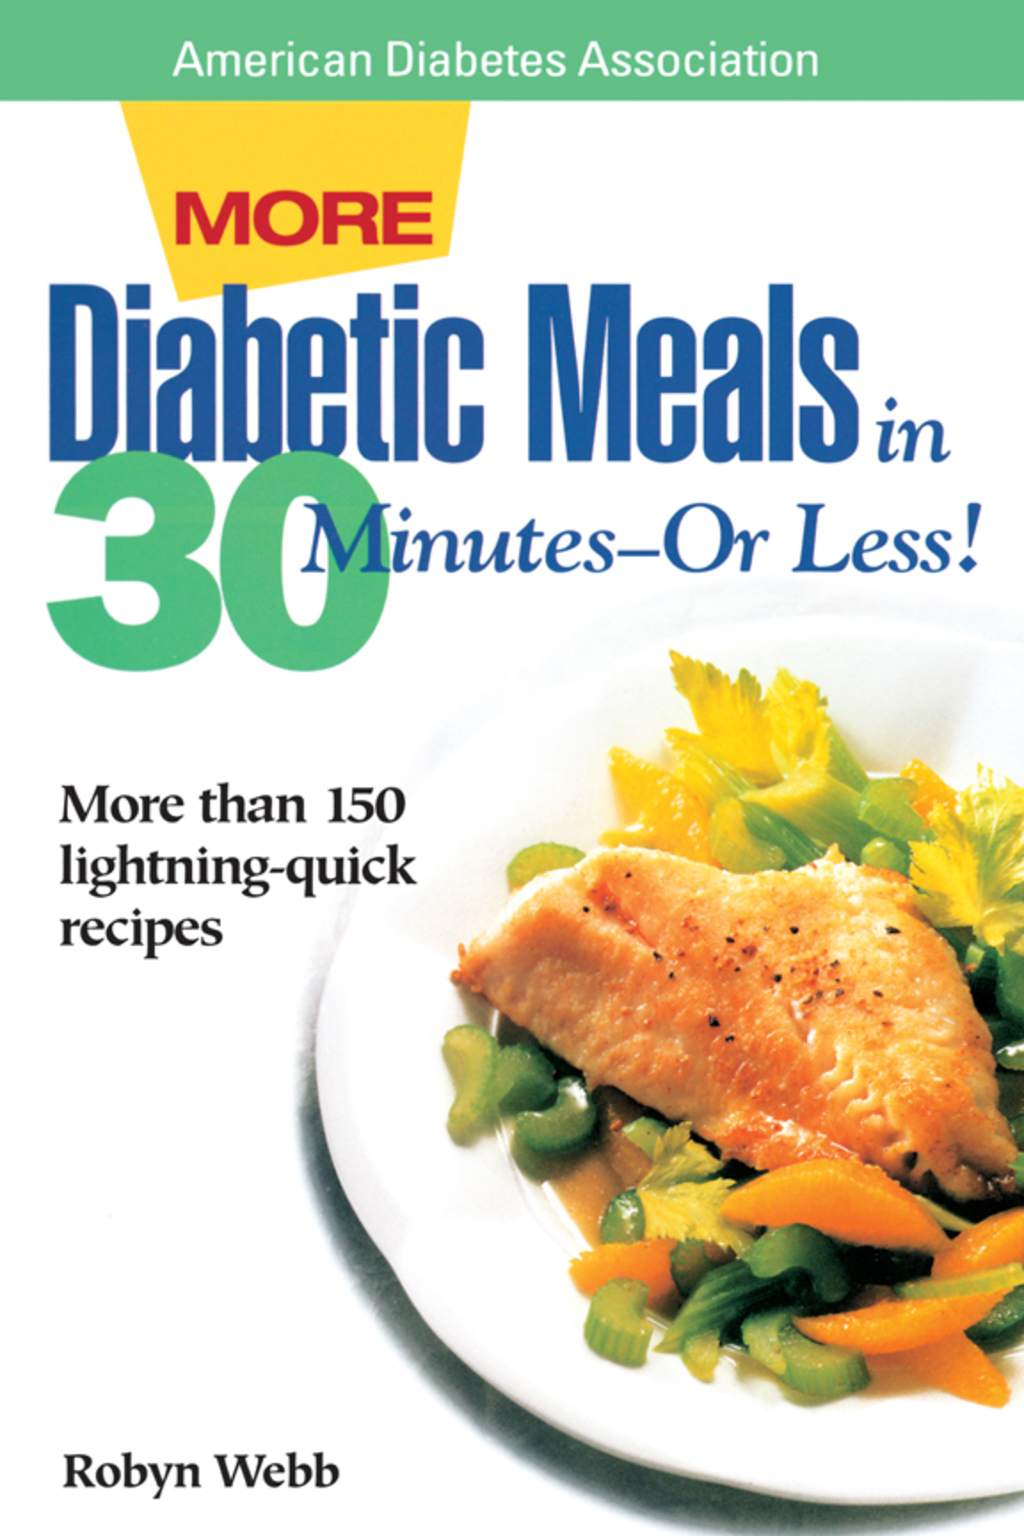 More Diabetic Meals in 30 Minutes?or Less! (ebook) eBooks